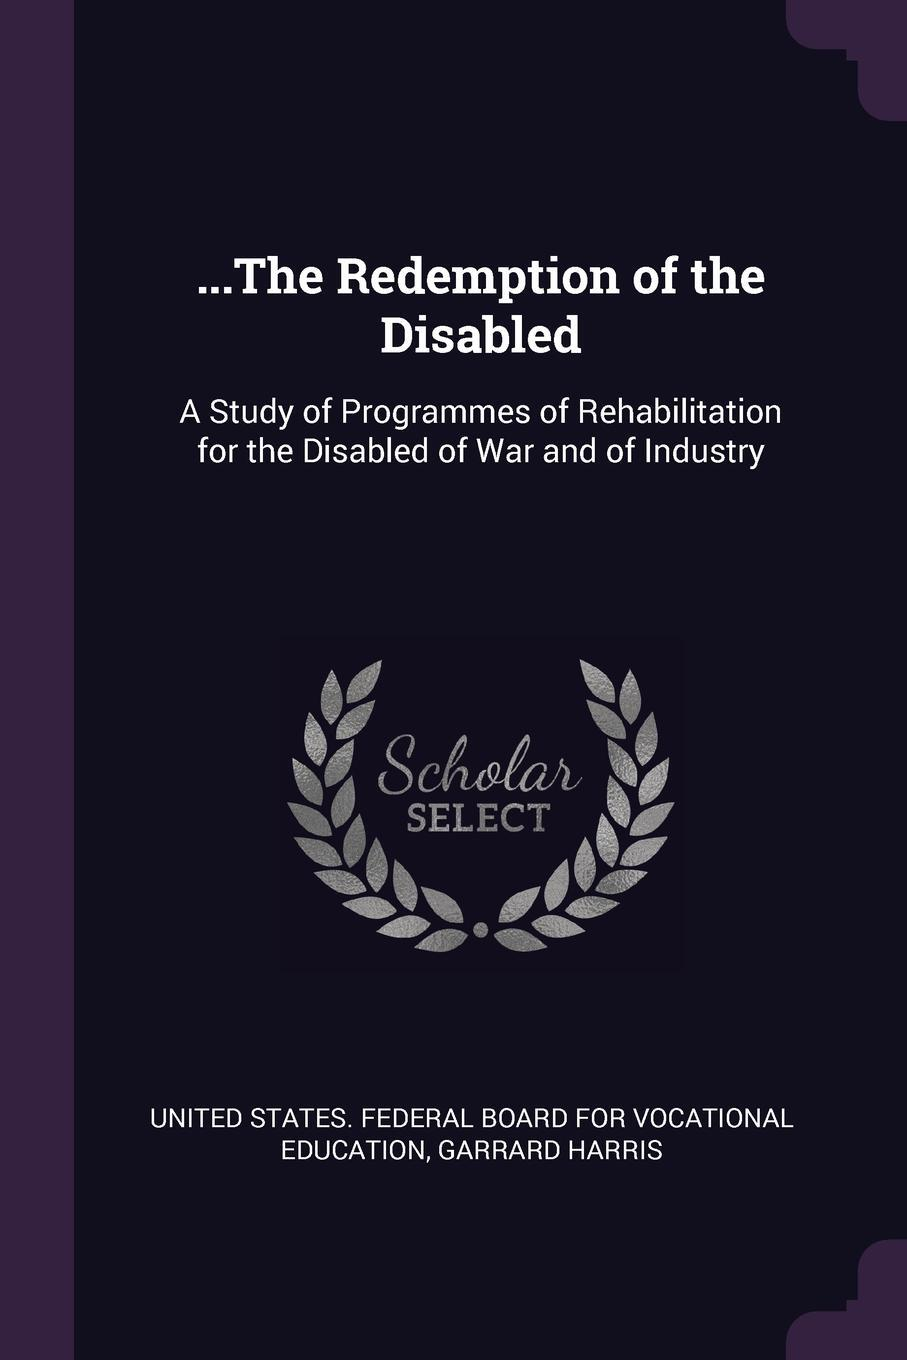 Garrard Harris. ...The Redemption of the Disabled. A Study of Programmes of Rehabilitation for the Disabled of War and of Industry